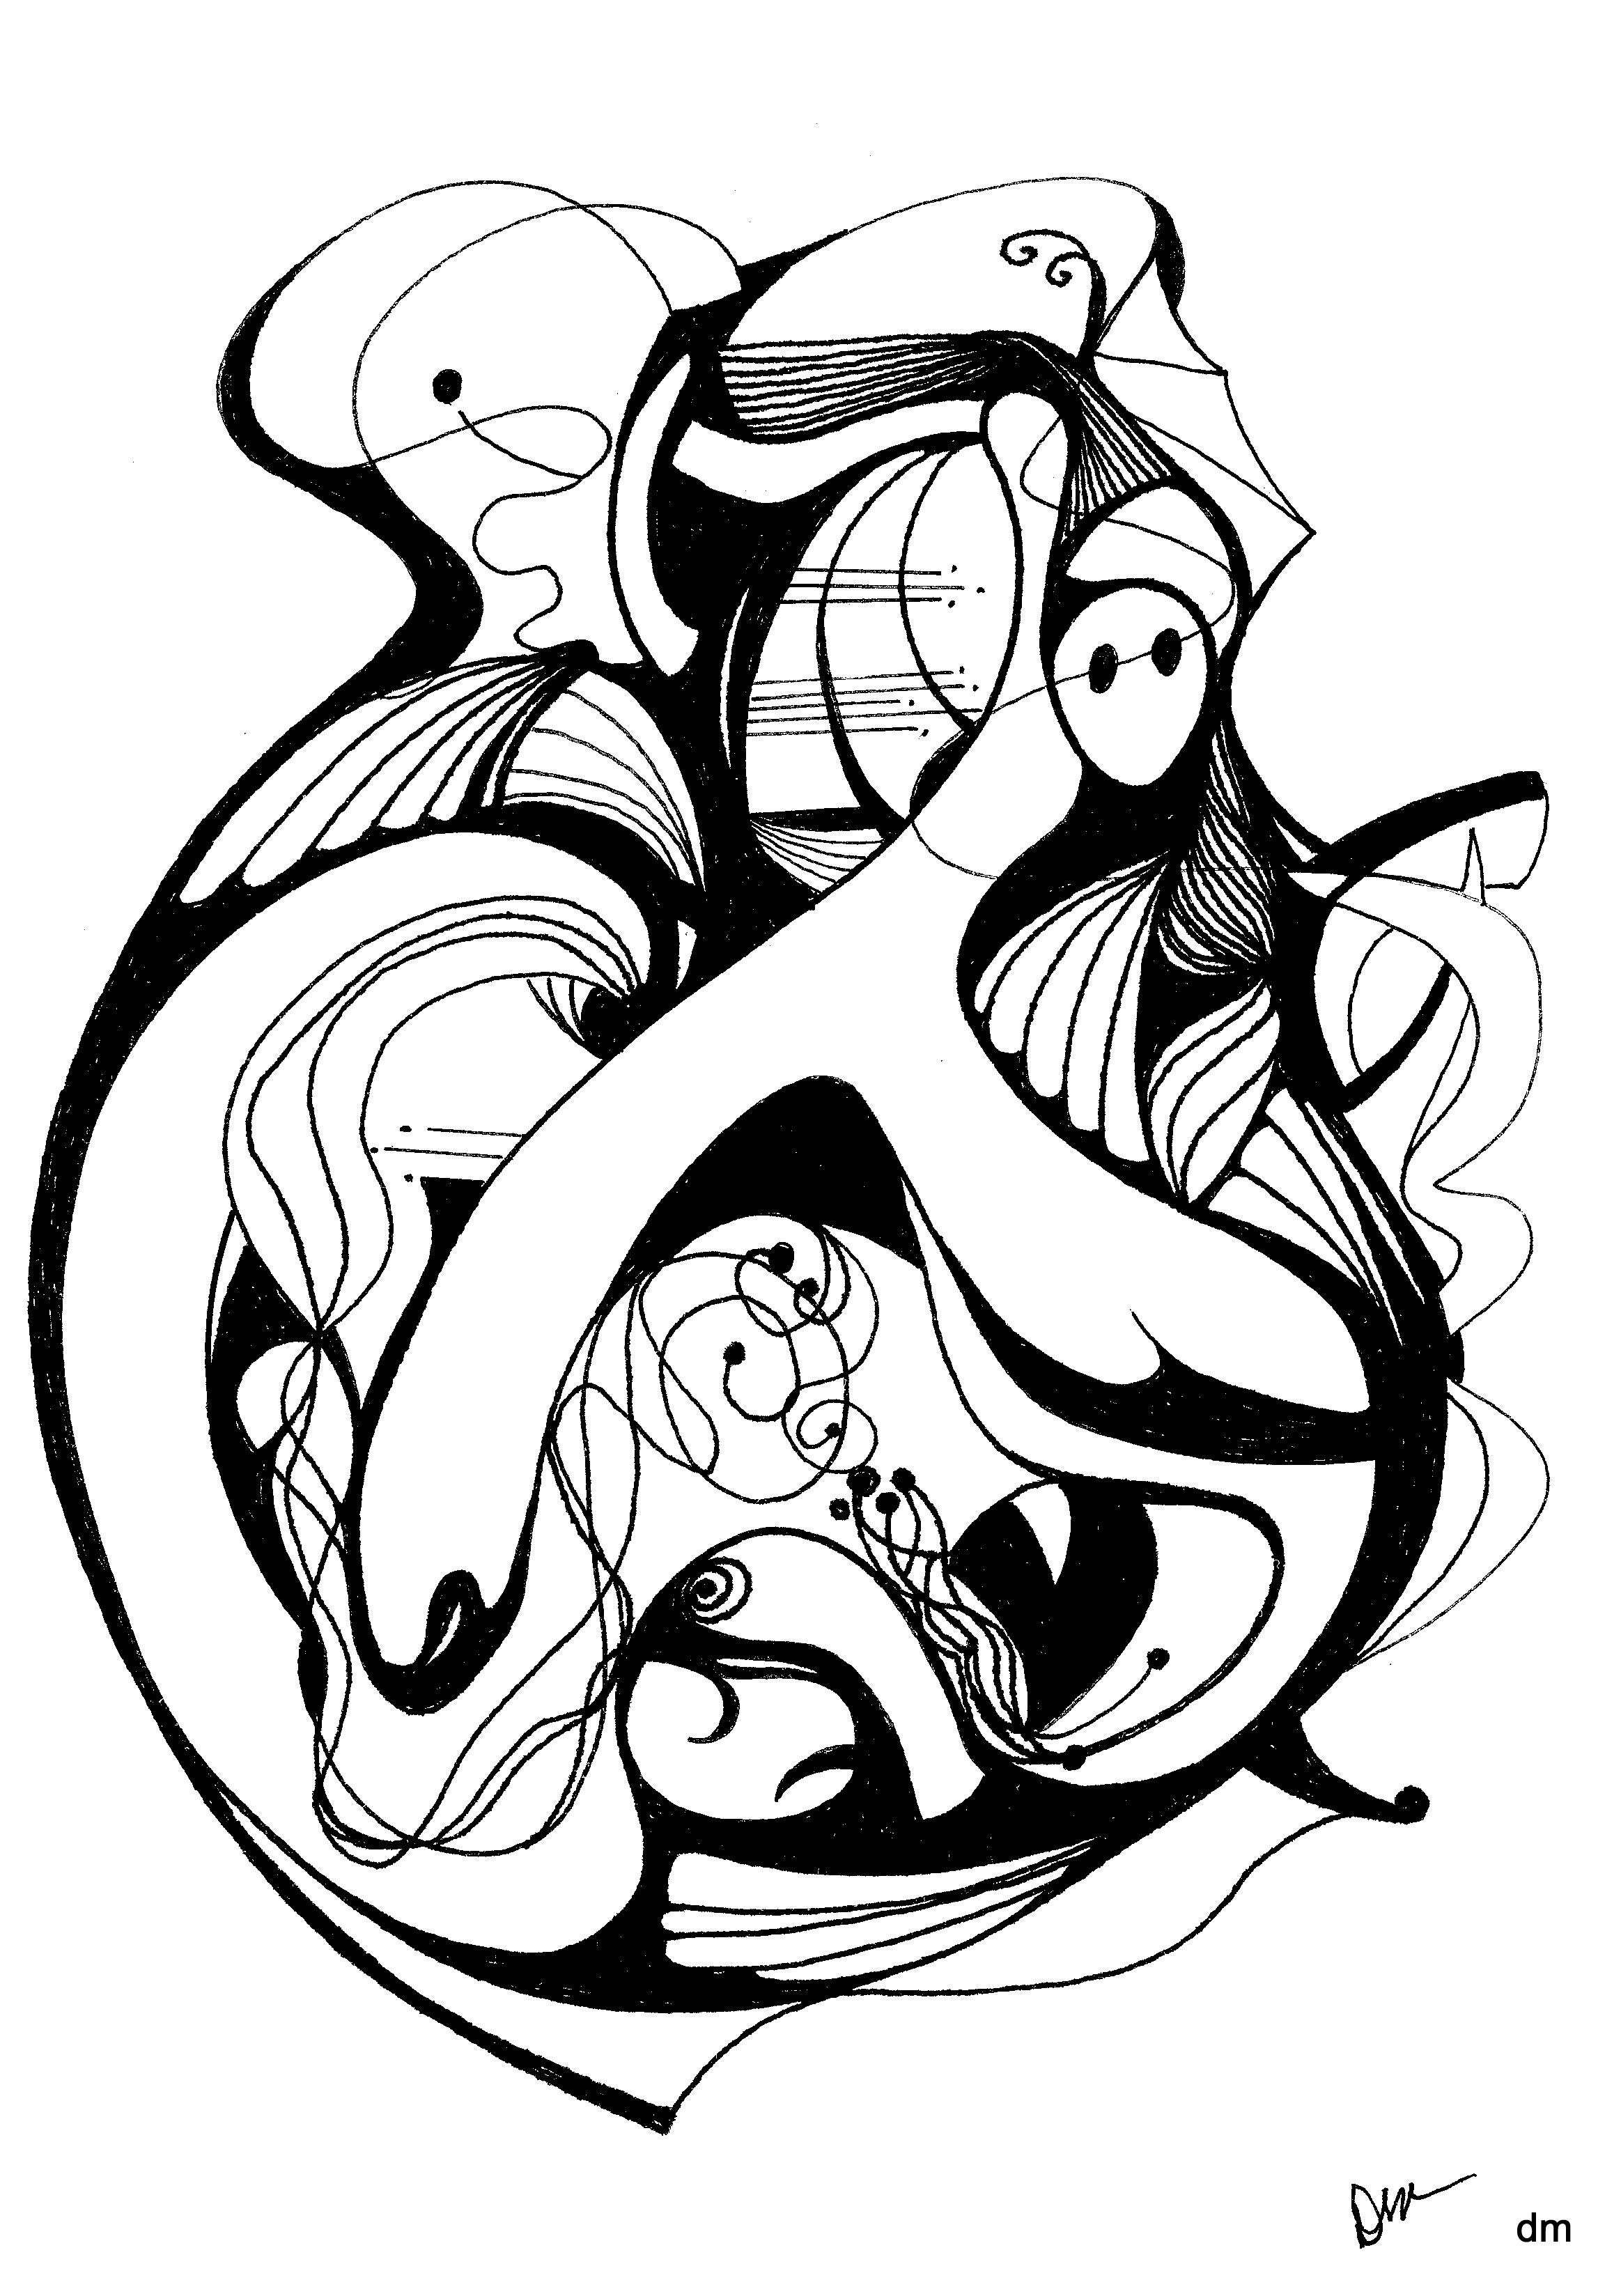 Pen Amp Ink Abstract Drawings